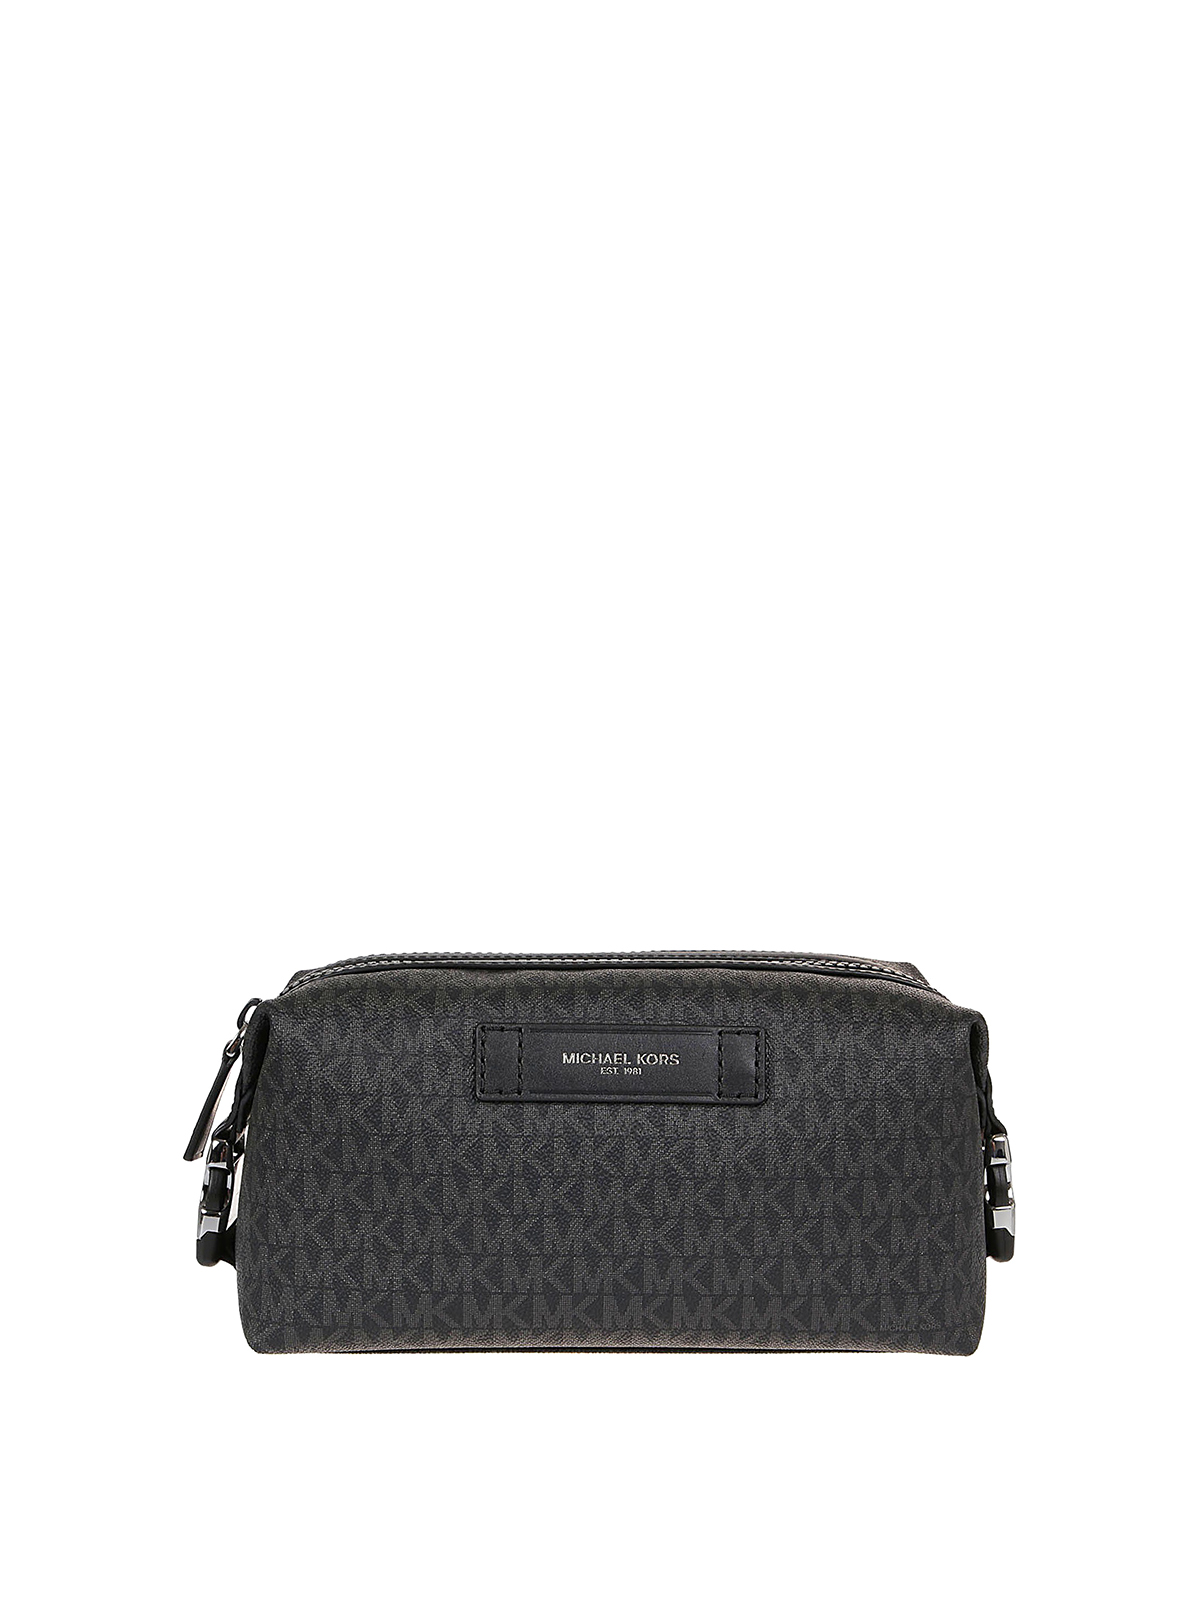 Michael Kors ALL OVER LOGO PRINT BEAUTY CASE